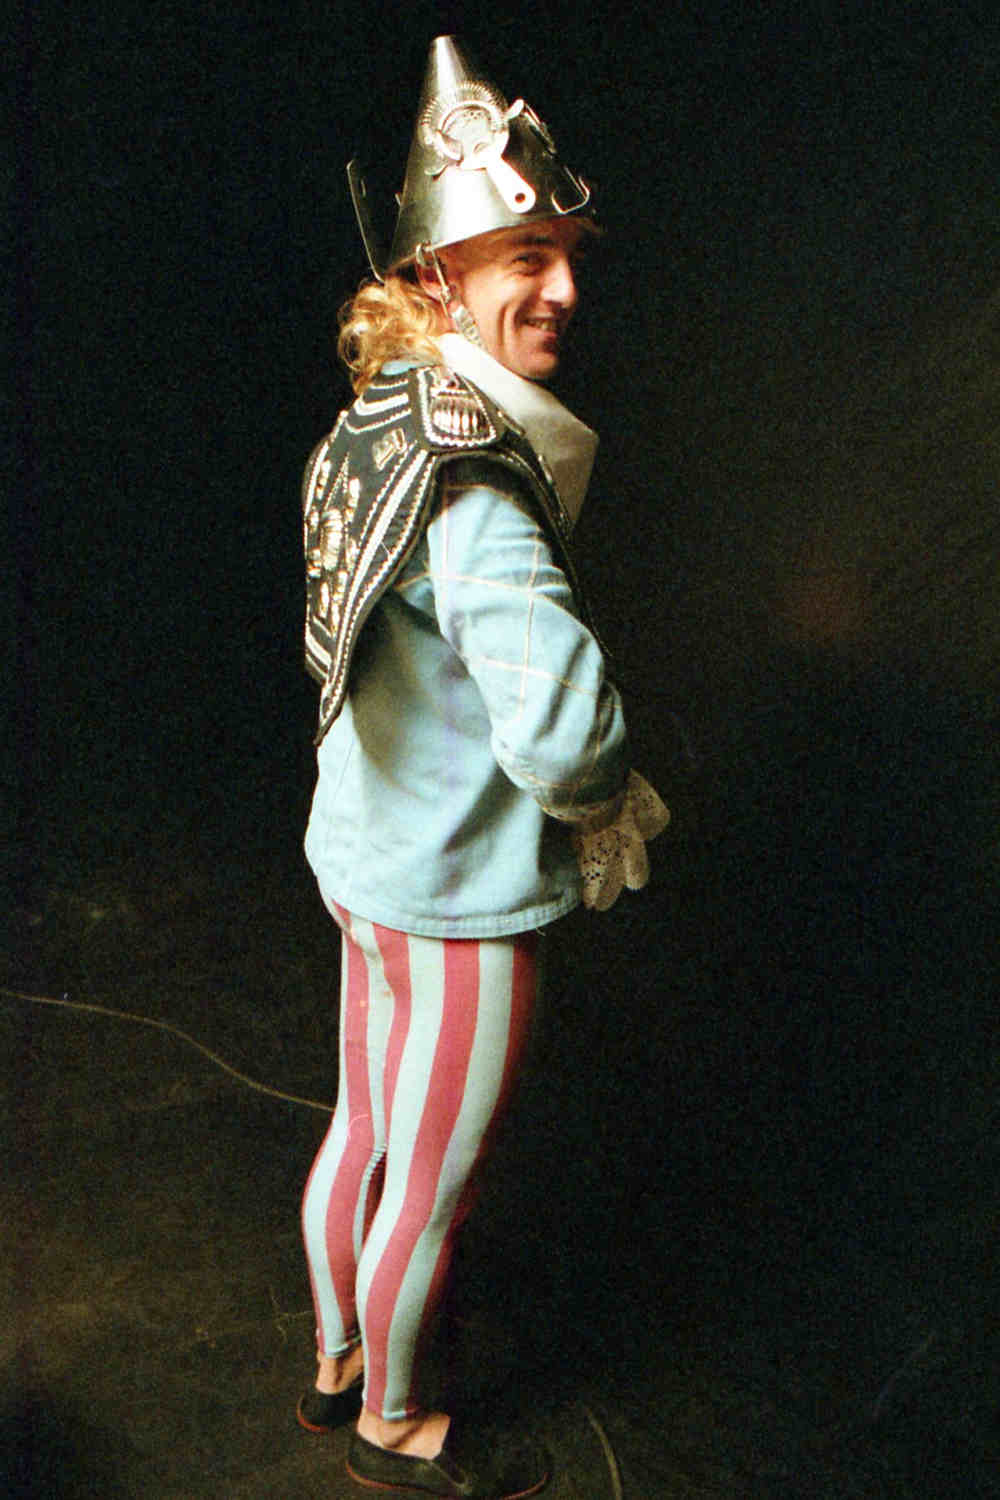 Handspan Theatre Guts costumed actor wearing blue and silver jacket, striped blue and purple tights and silver colander helmet